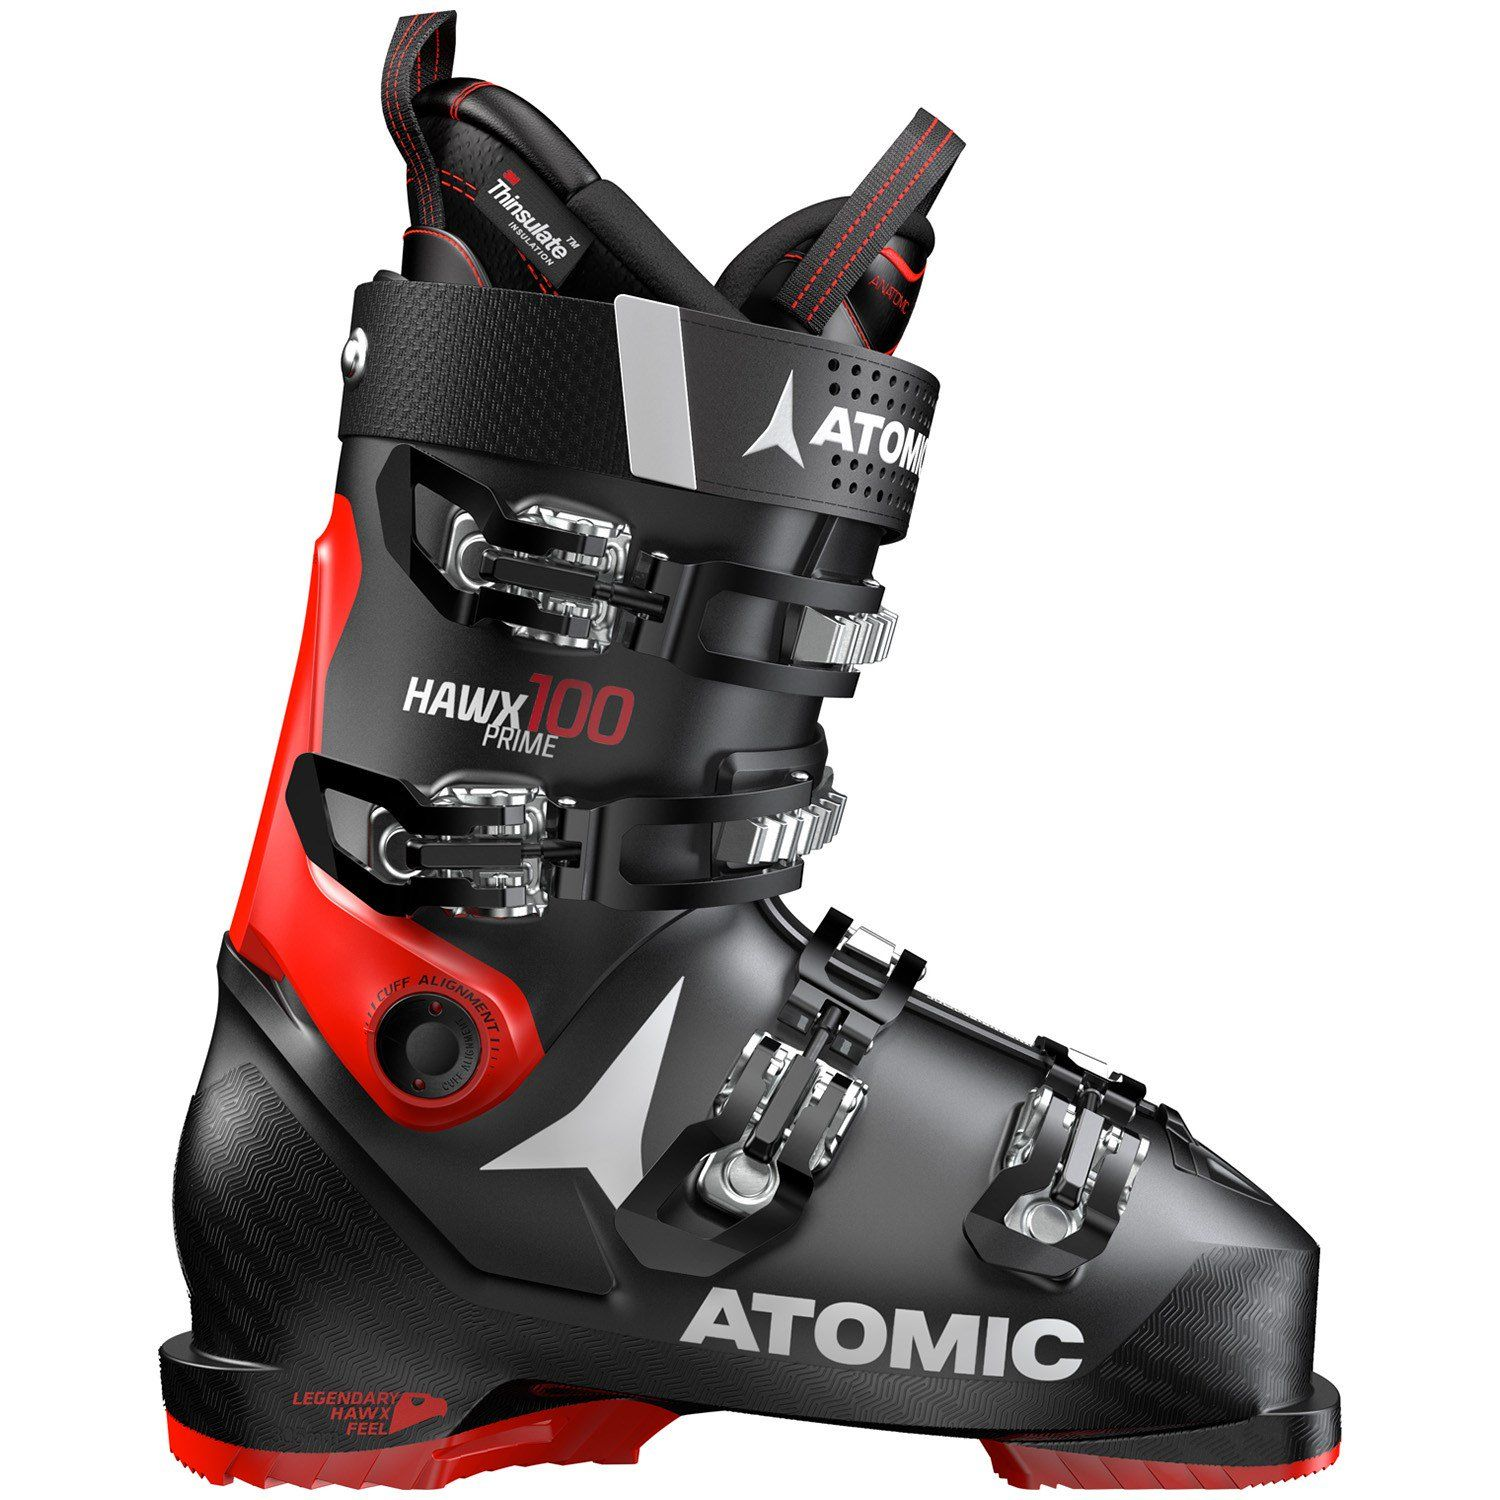 Atomic Hawx Prime 100 Ski Boots 2020 Racing Boots Boots